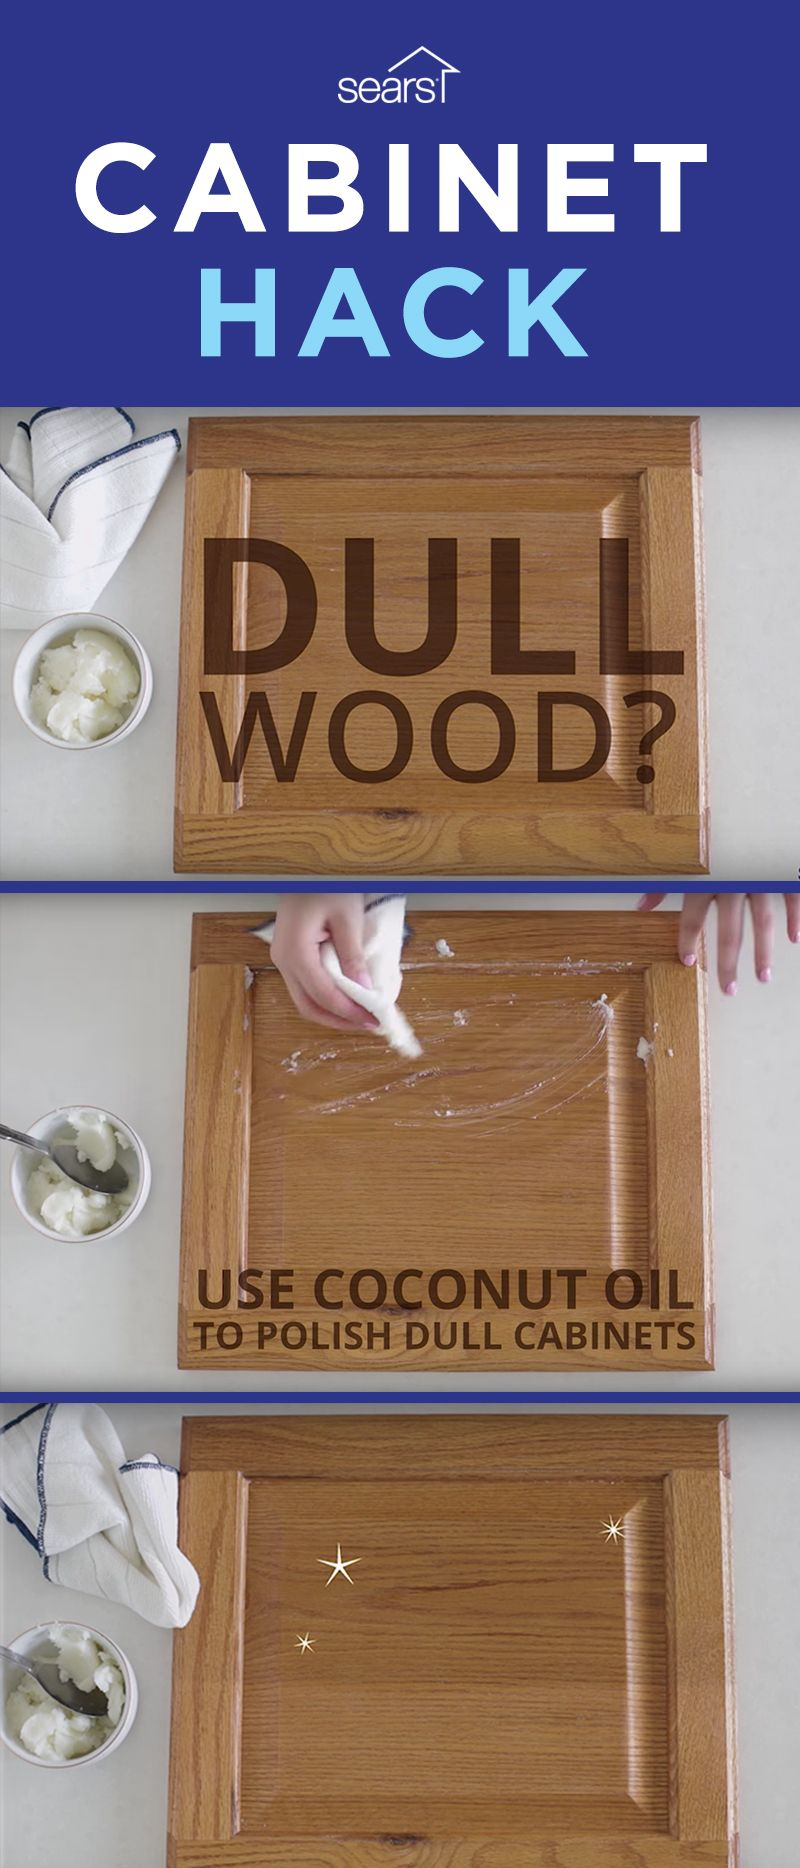 Cabinet Hacks Tested We Ve The Por Hack Of Polishing Stressed Wood Cabinets With Coconut Oil Much Has Been Written About